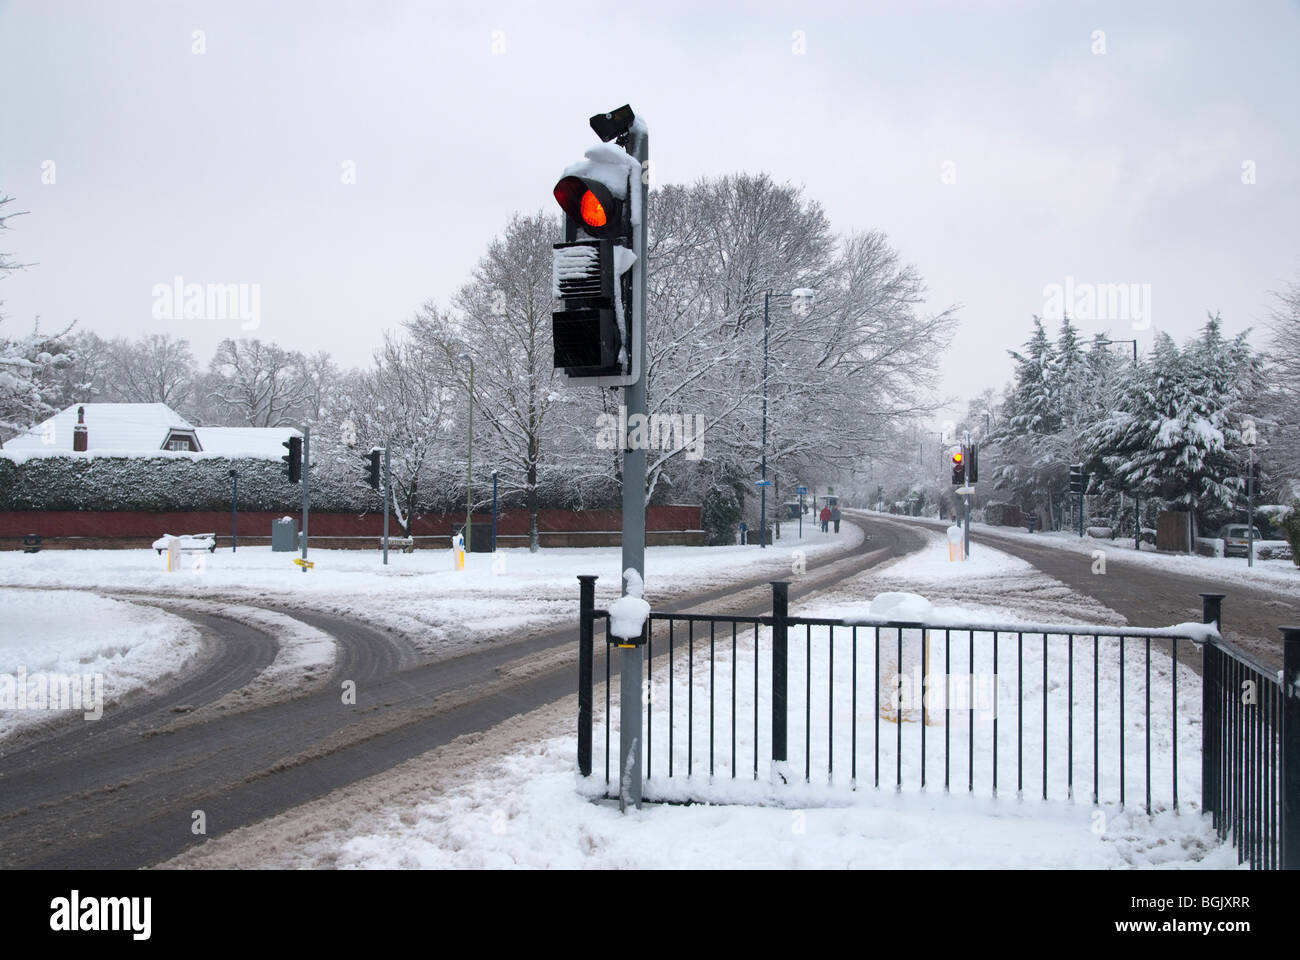 traffic lights in snow on read with no traffic. Major snow fall A3 area of hampshire january 2010 - Stock Image